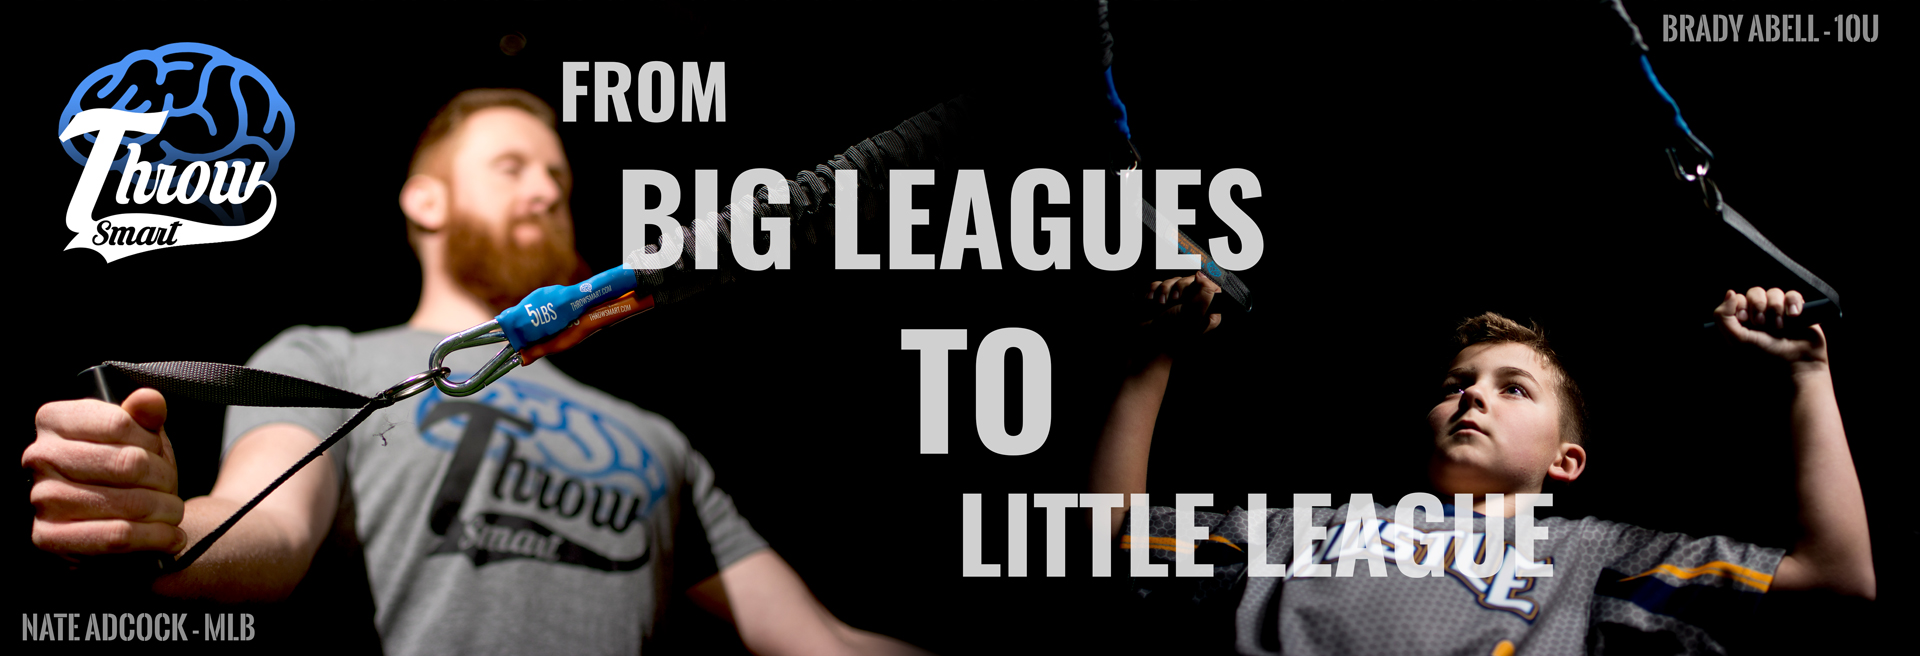 From Big Leagues To Little Leagues